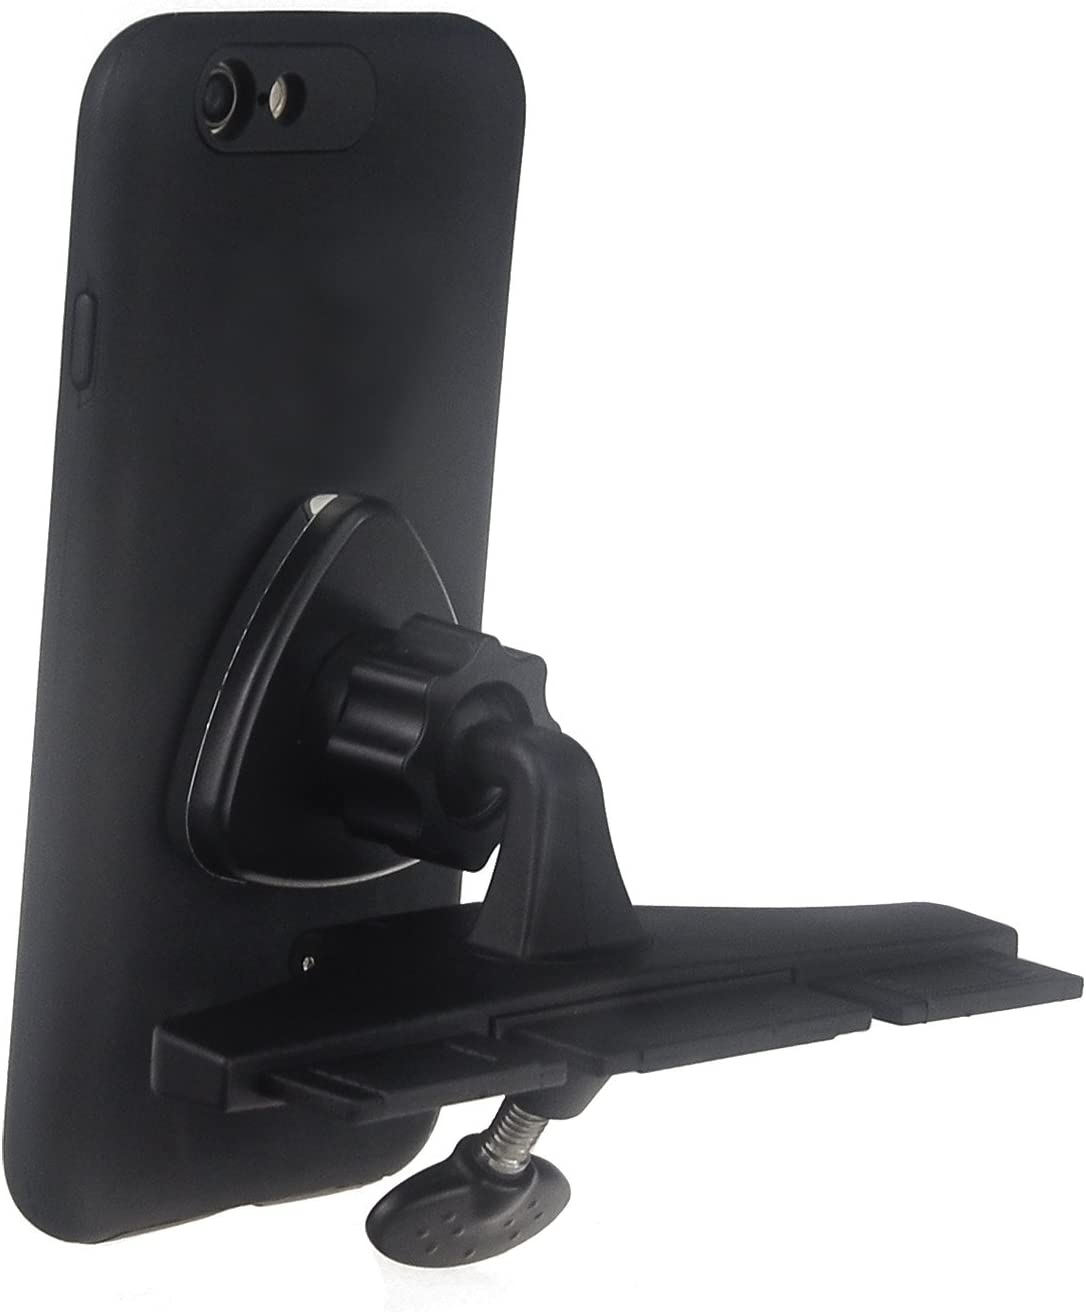 For Samsung Silicone Car DISC Mount Holder For Smartphones Saza Electronics S035 Universal CD Slot Magnetic Phone Holder Mini Tripod Mount Portable Flexible Stand with 360 Degree Rotation iphone